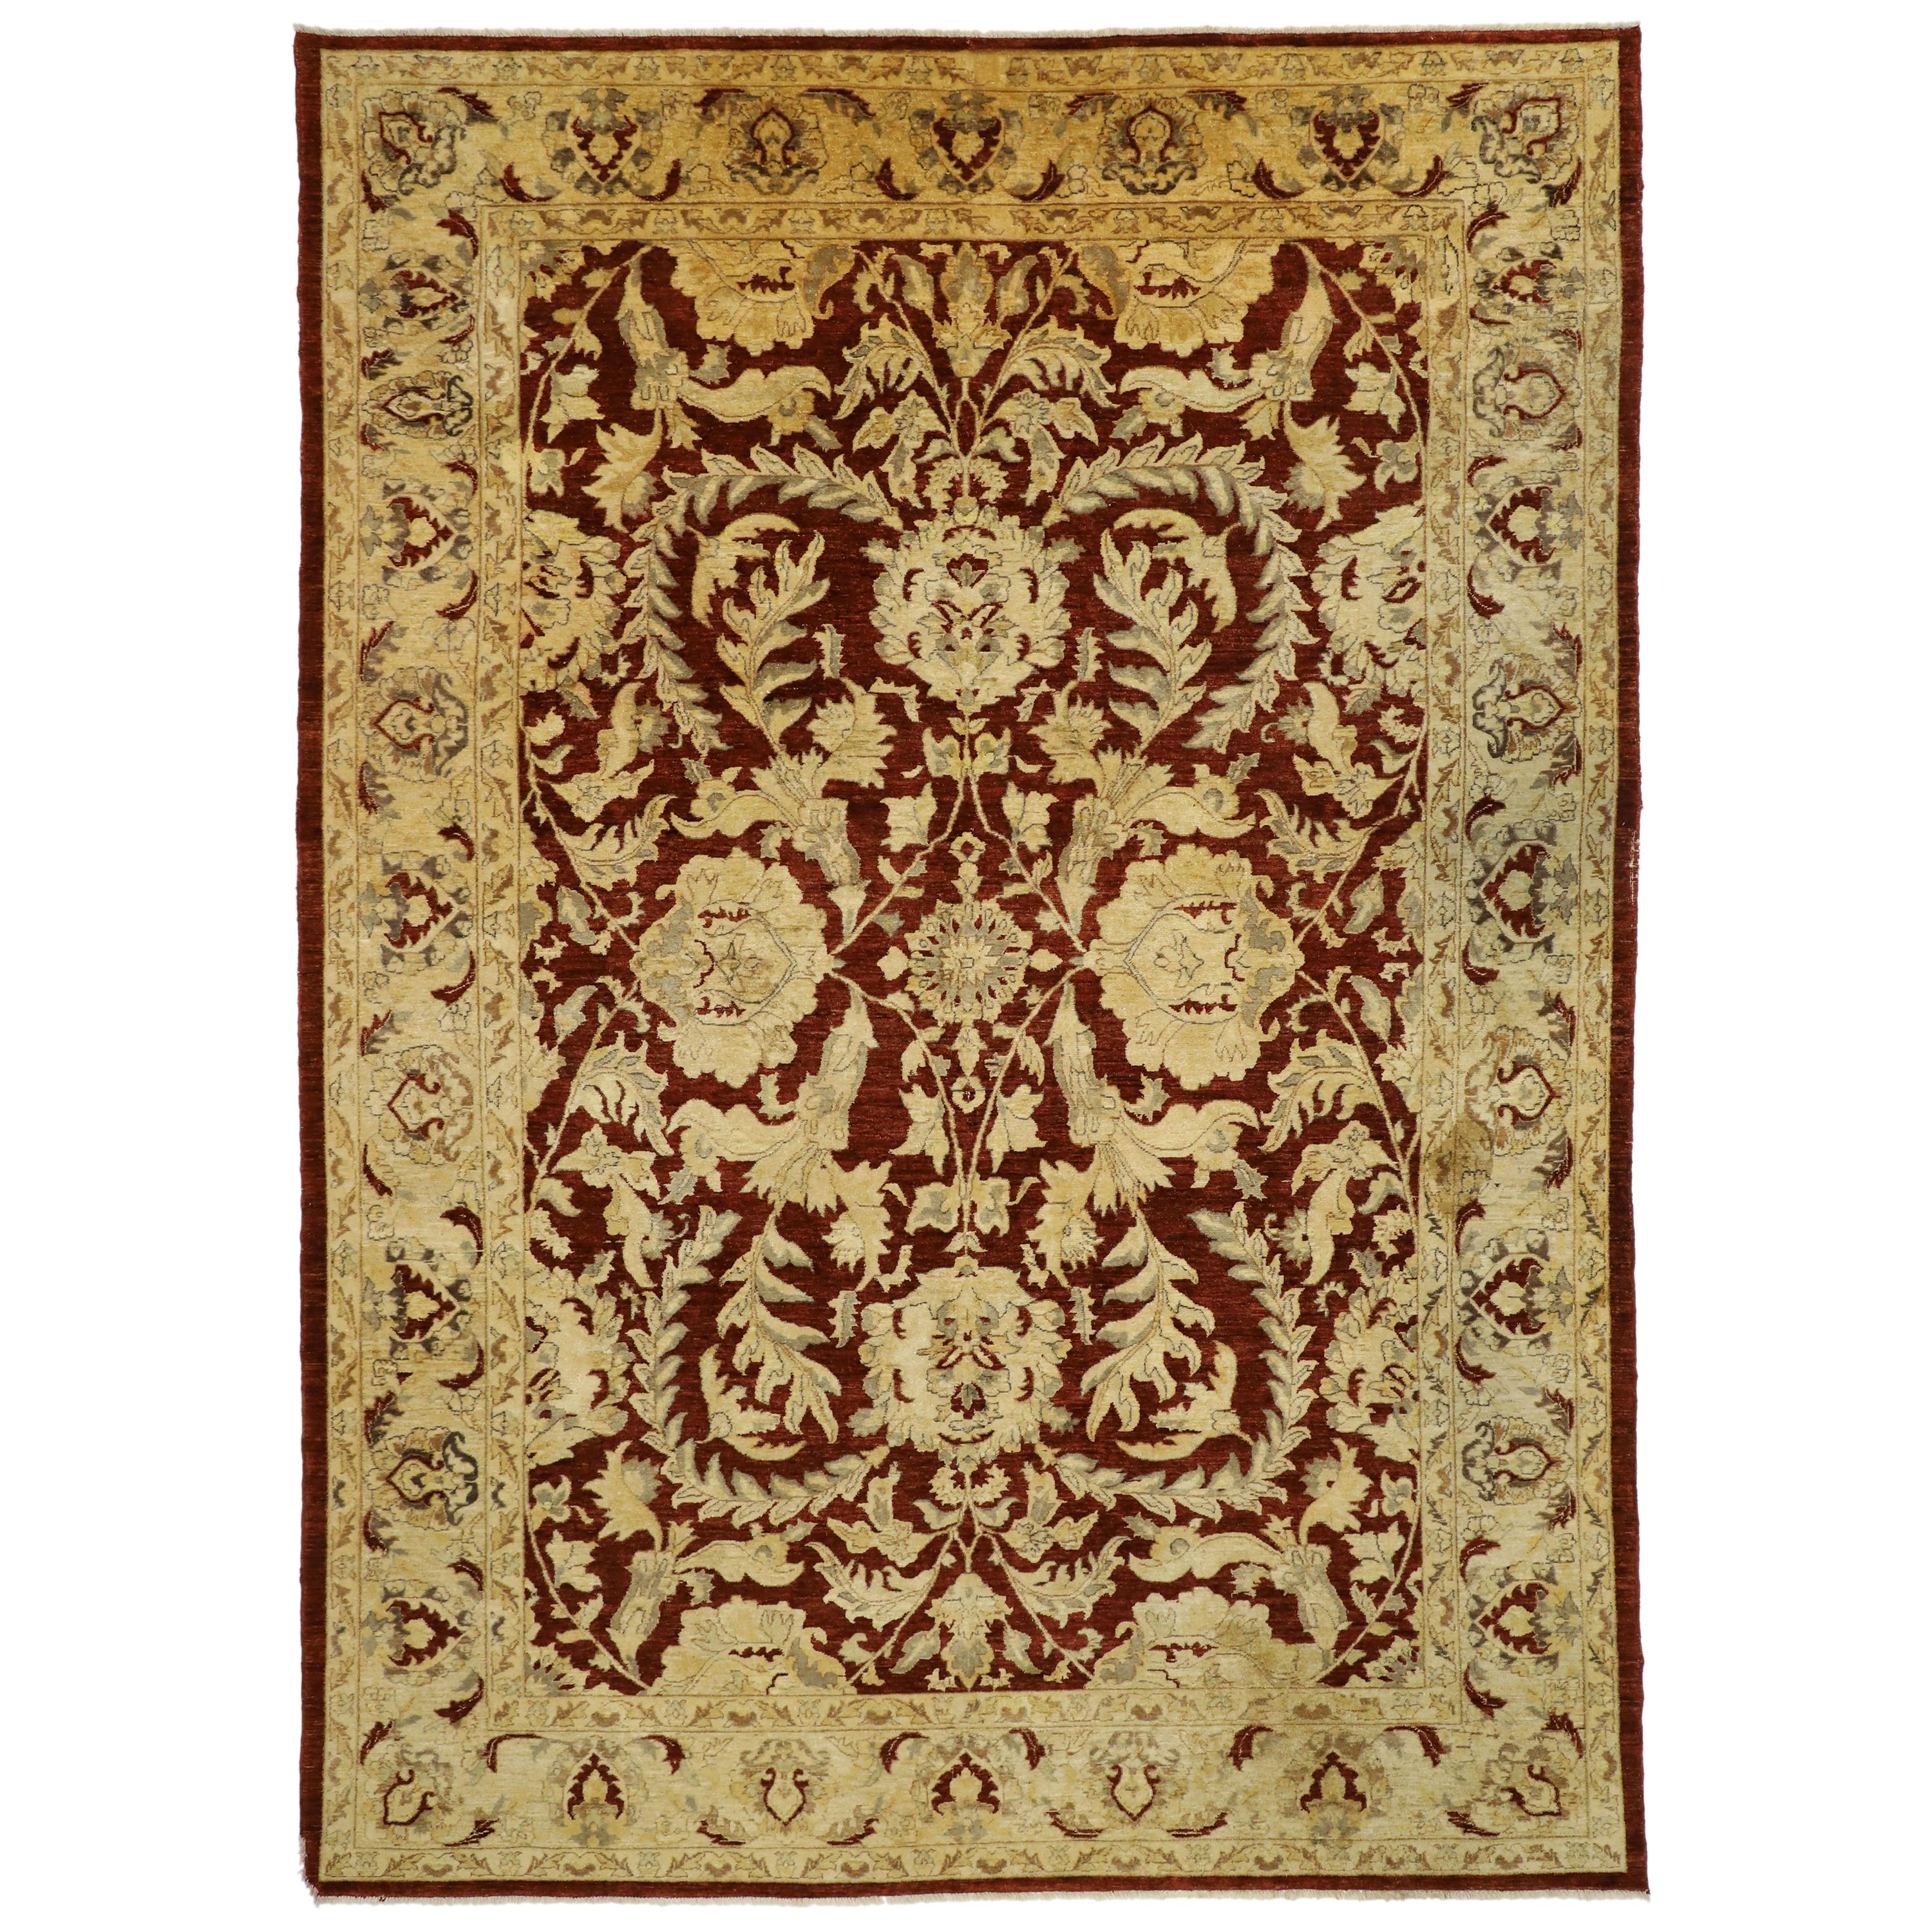 Antique Traditional Indian Area Rug with Persian Design and Luxe Baroque Style